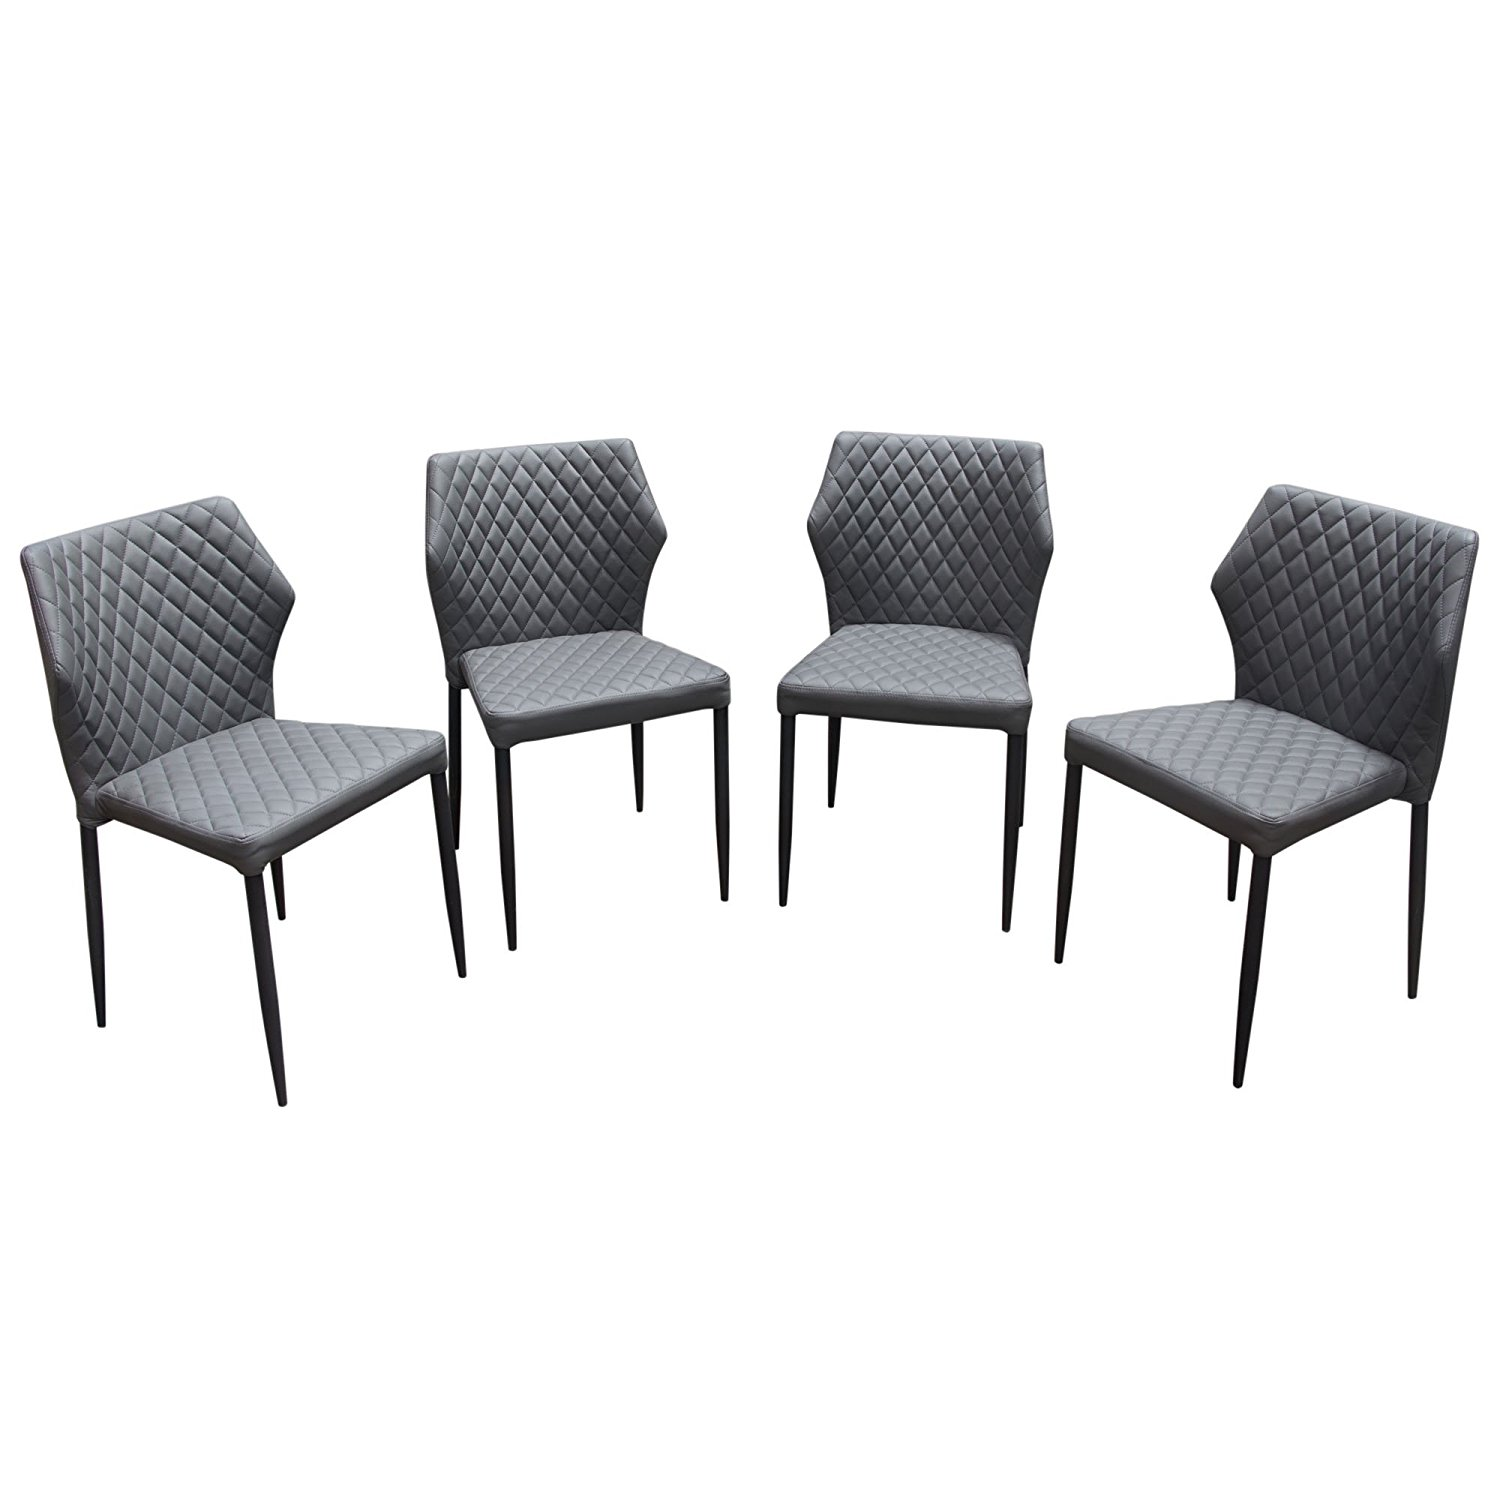 Cheap Hand Sofa Chairs Find Hand Sofa Chairs Deals On Line